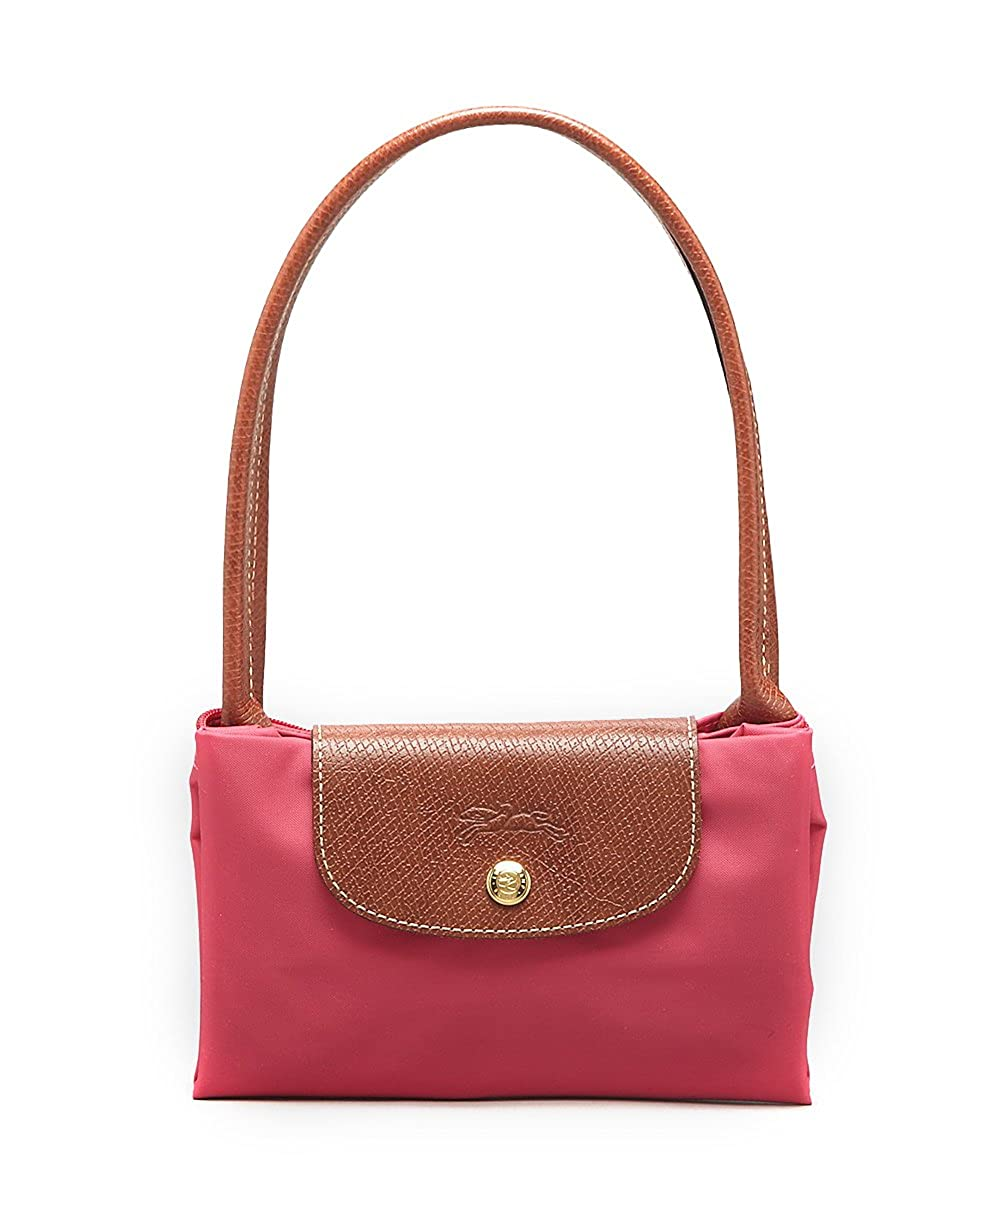 2d445afe14d Amazon.com: Longchamp Le Pliage Large Tote - Deep Red: Shoes